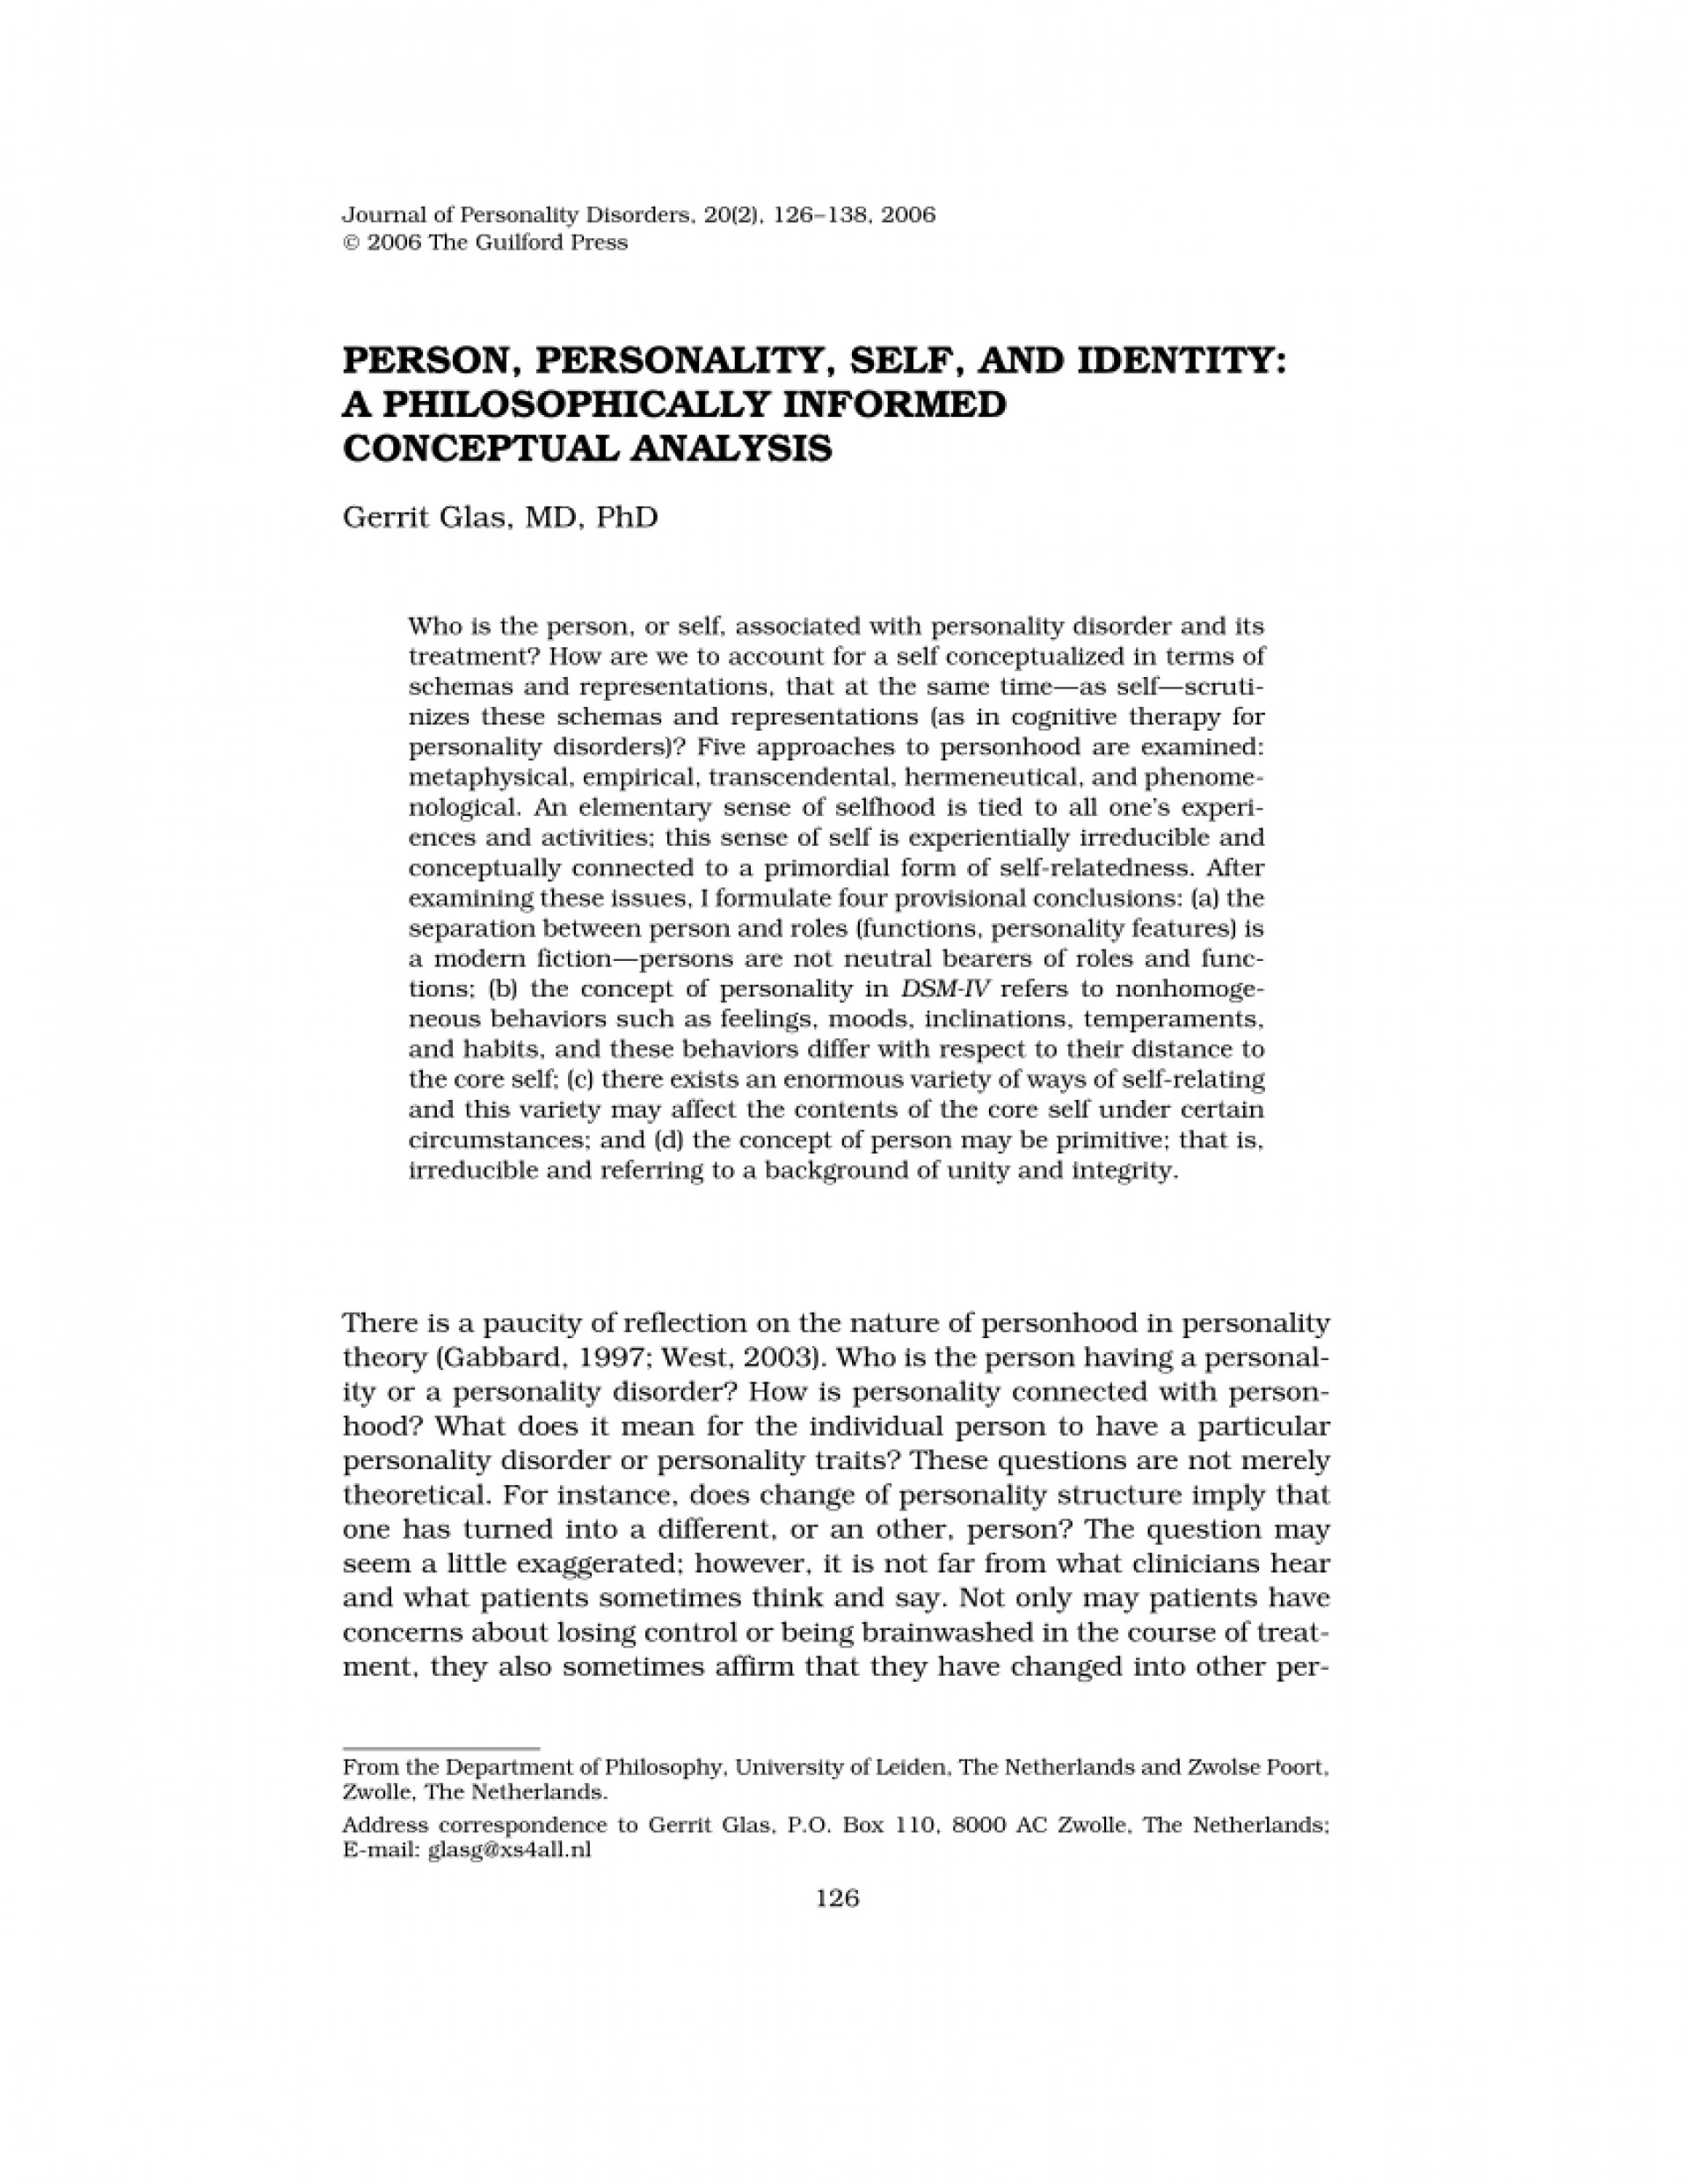 005 How To Describe Person Personality In Essay Largepreview Stunning A 1920